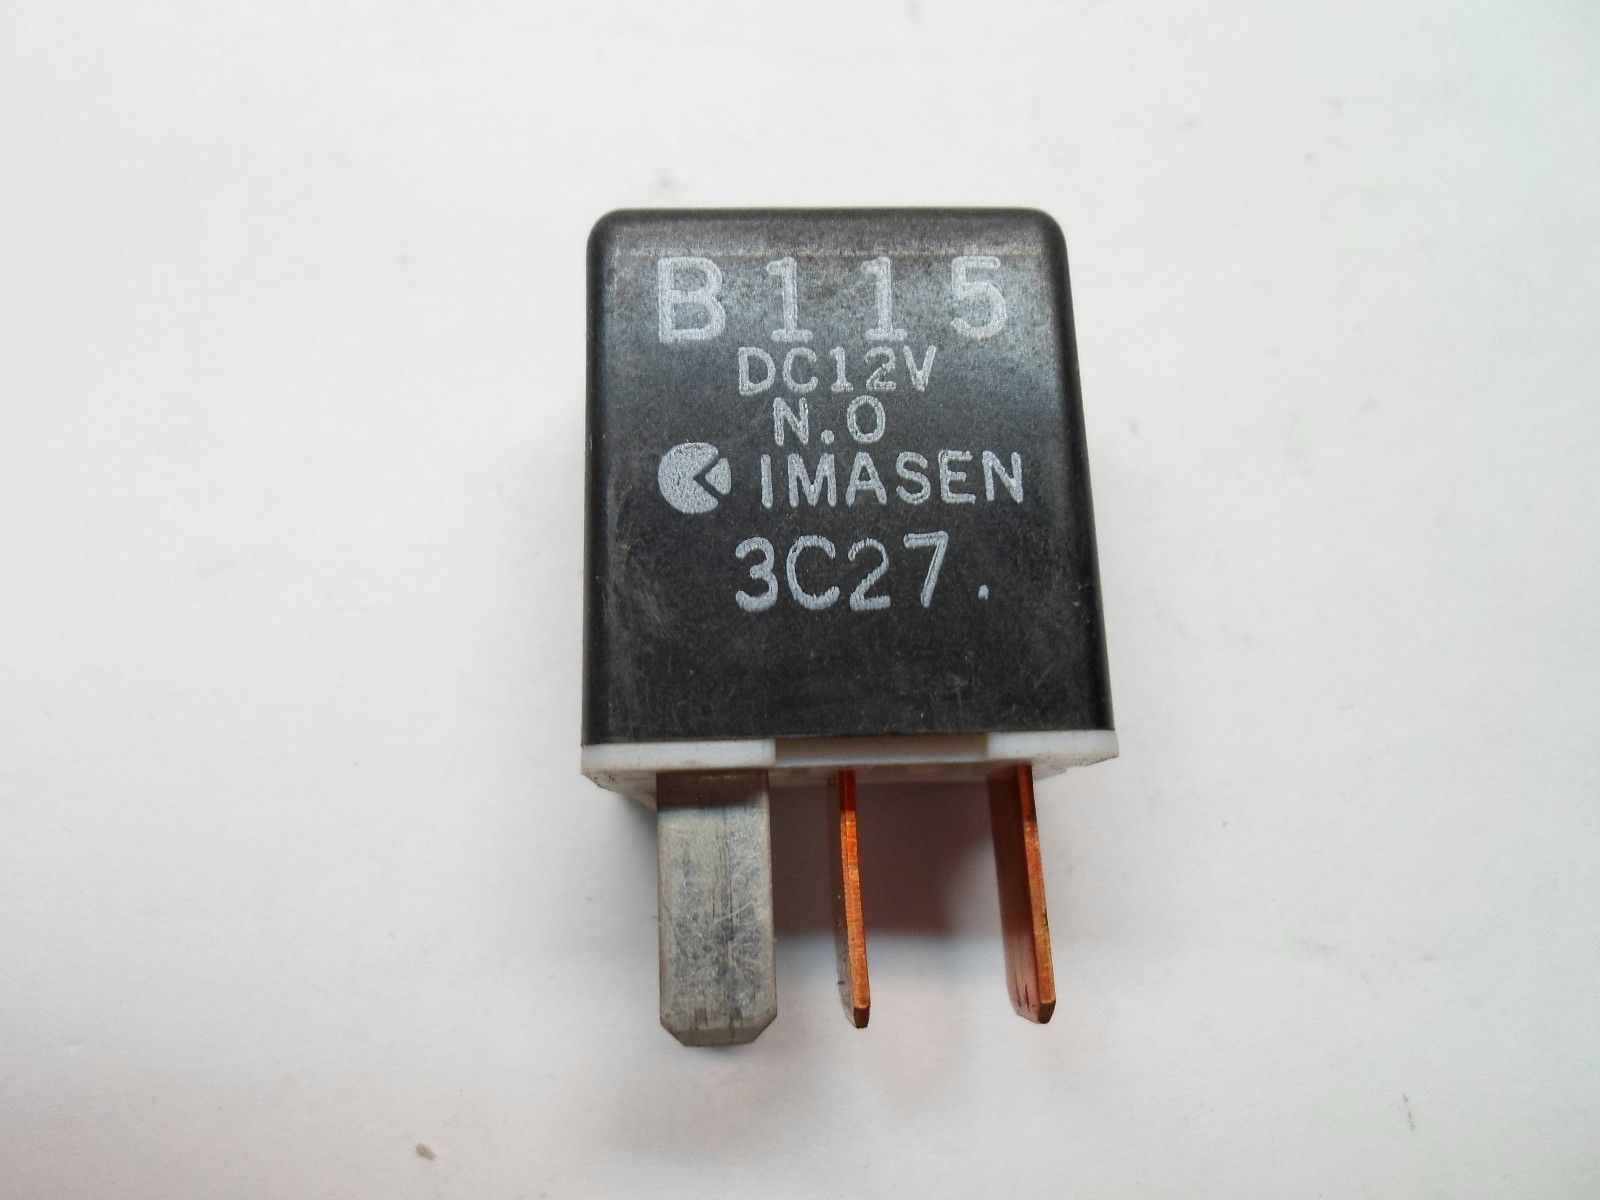 MAZDA B115 IMASEN RELAY FUSE OEM TESTED FREE SHIPPING 6 MONTH WARRANTY MZ2